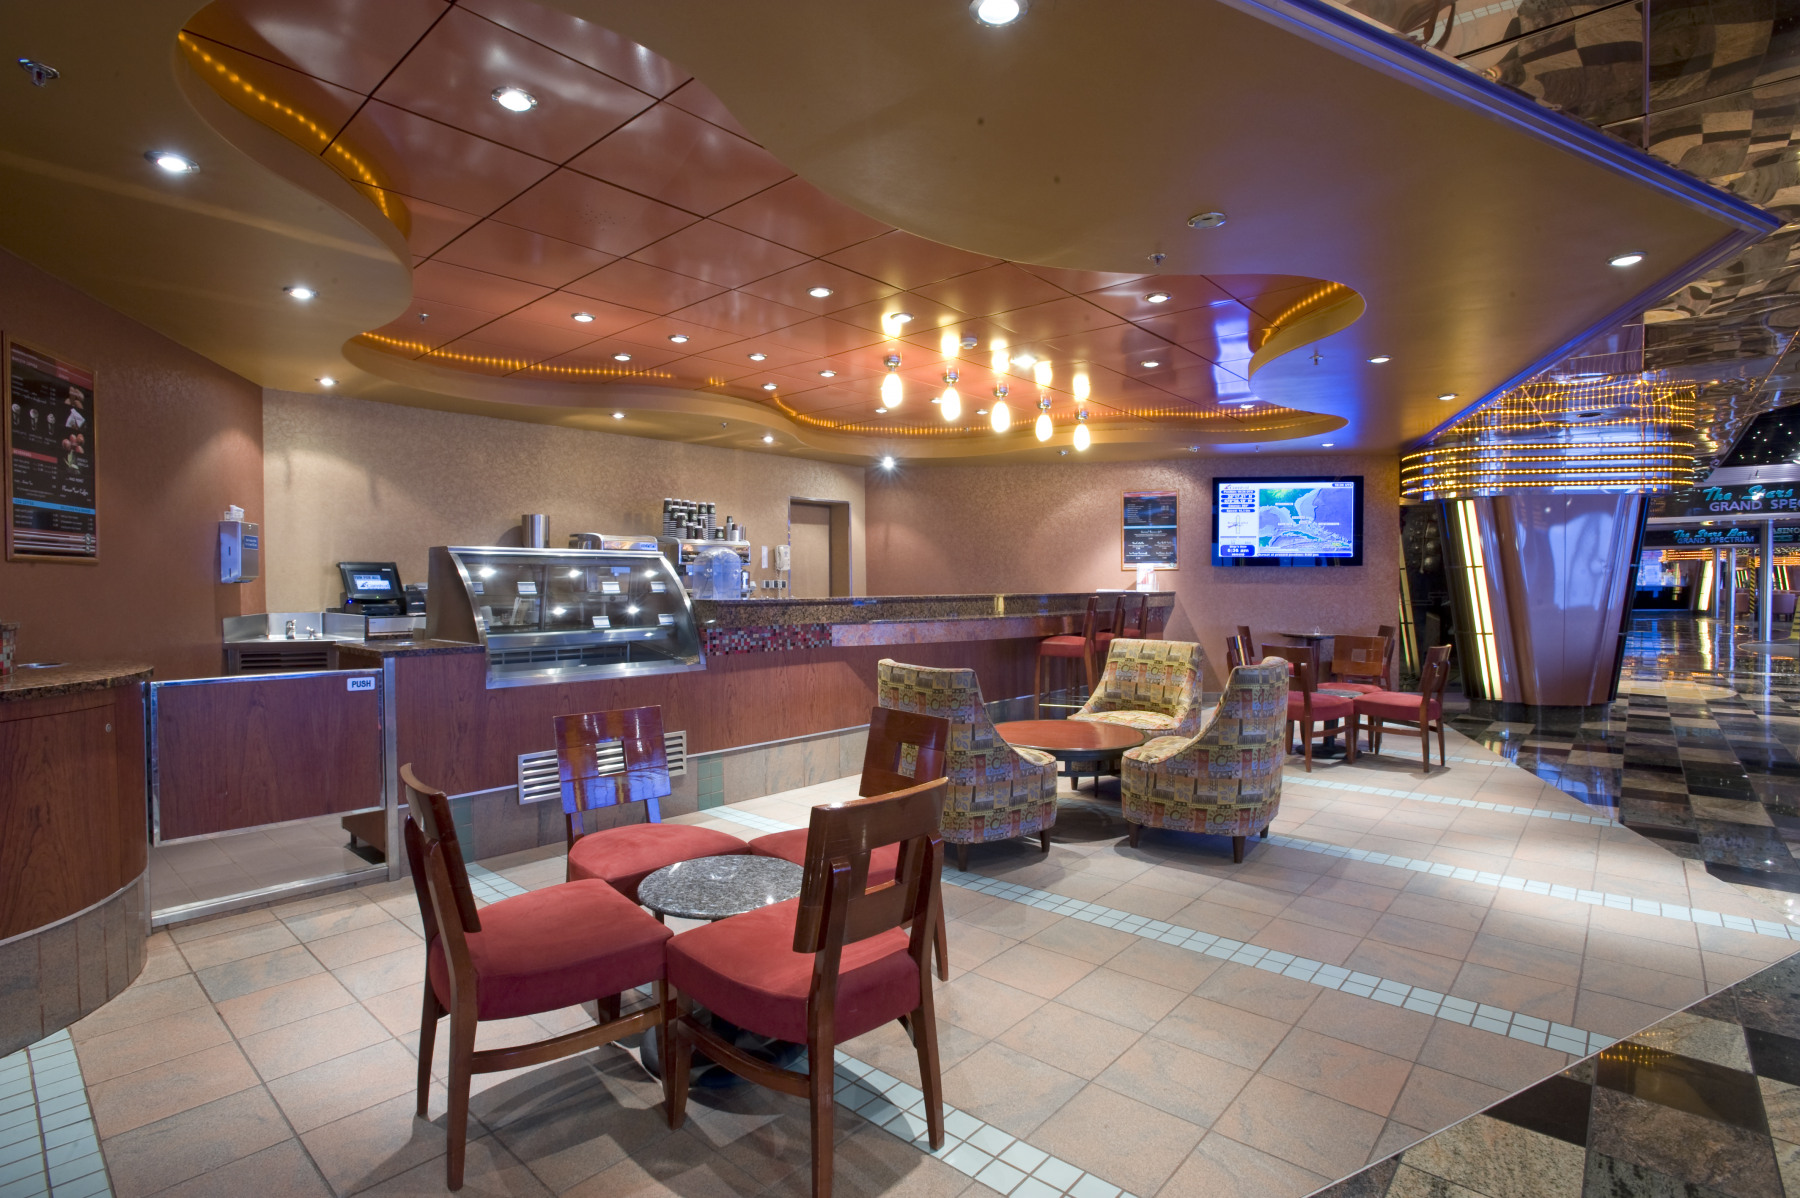 Carnival Fascination Bogarts Cafe 1.jpg